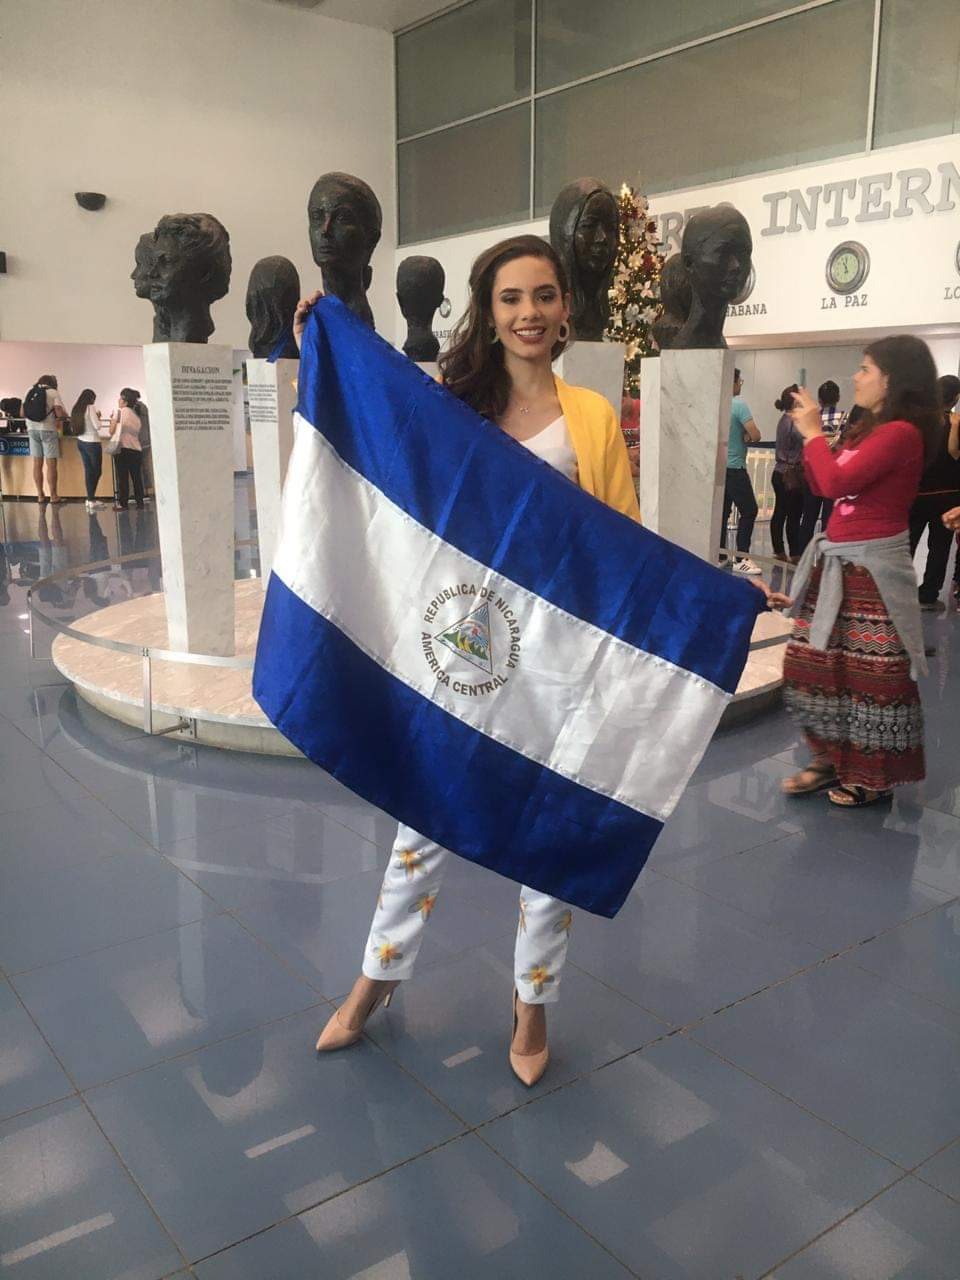 MISS UNIVERSE 2019 - OFFICIAL COVERAGE  - Page 6 Fb_13618